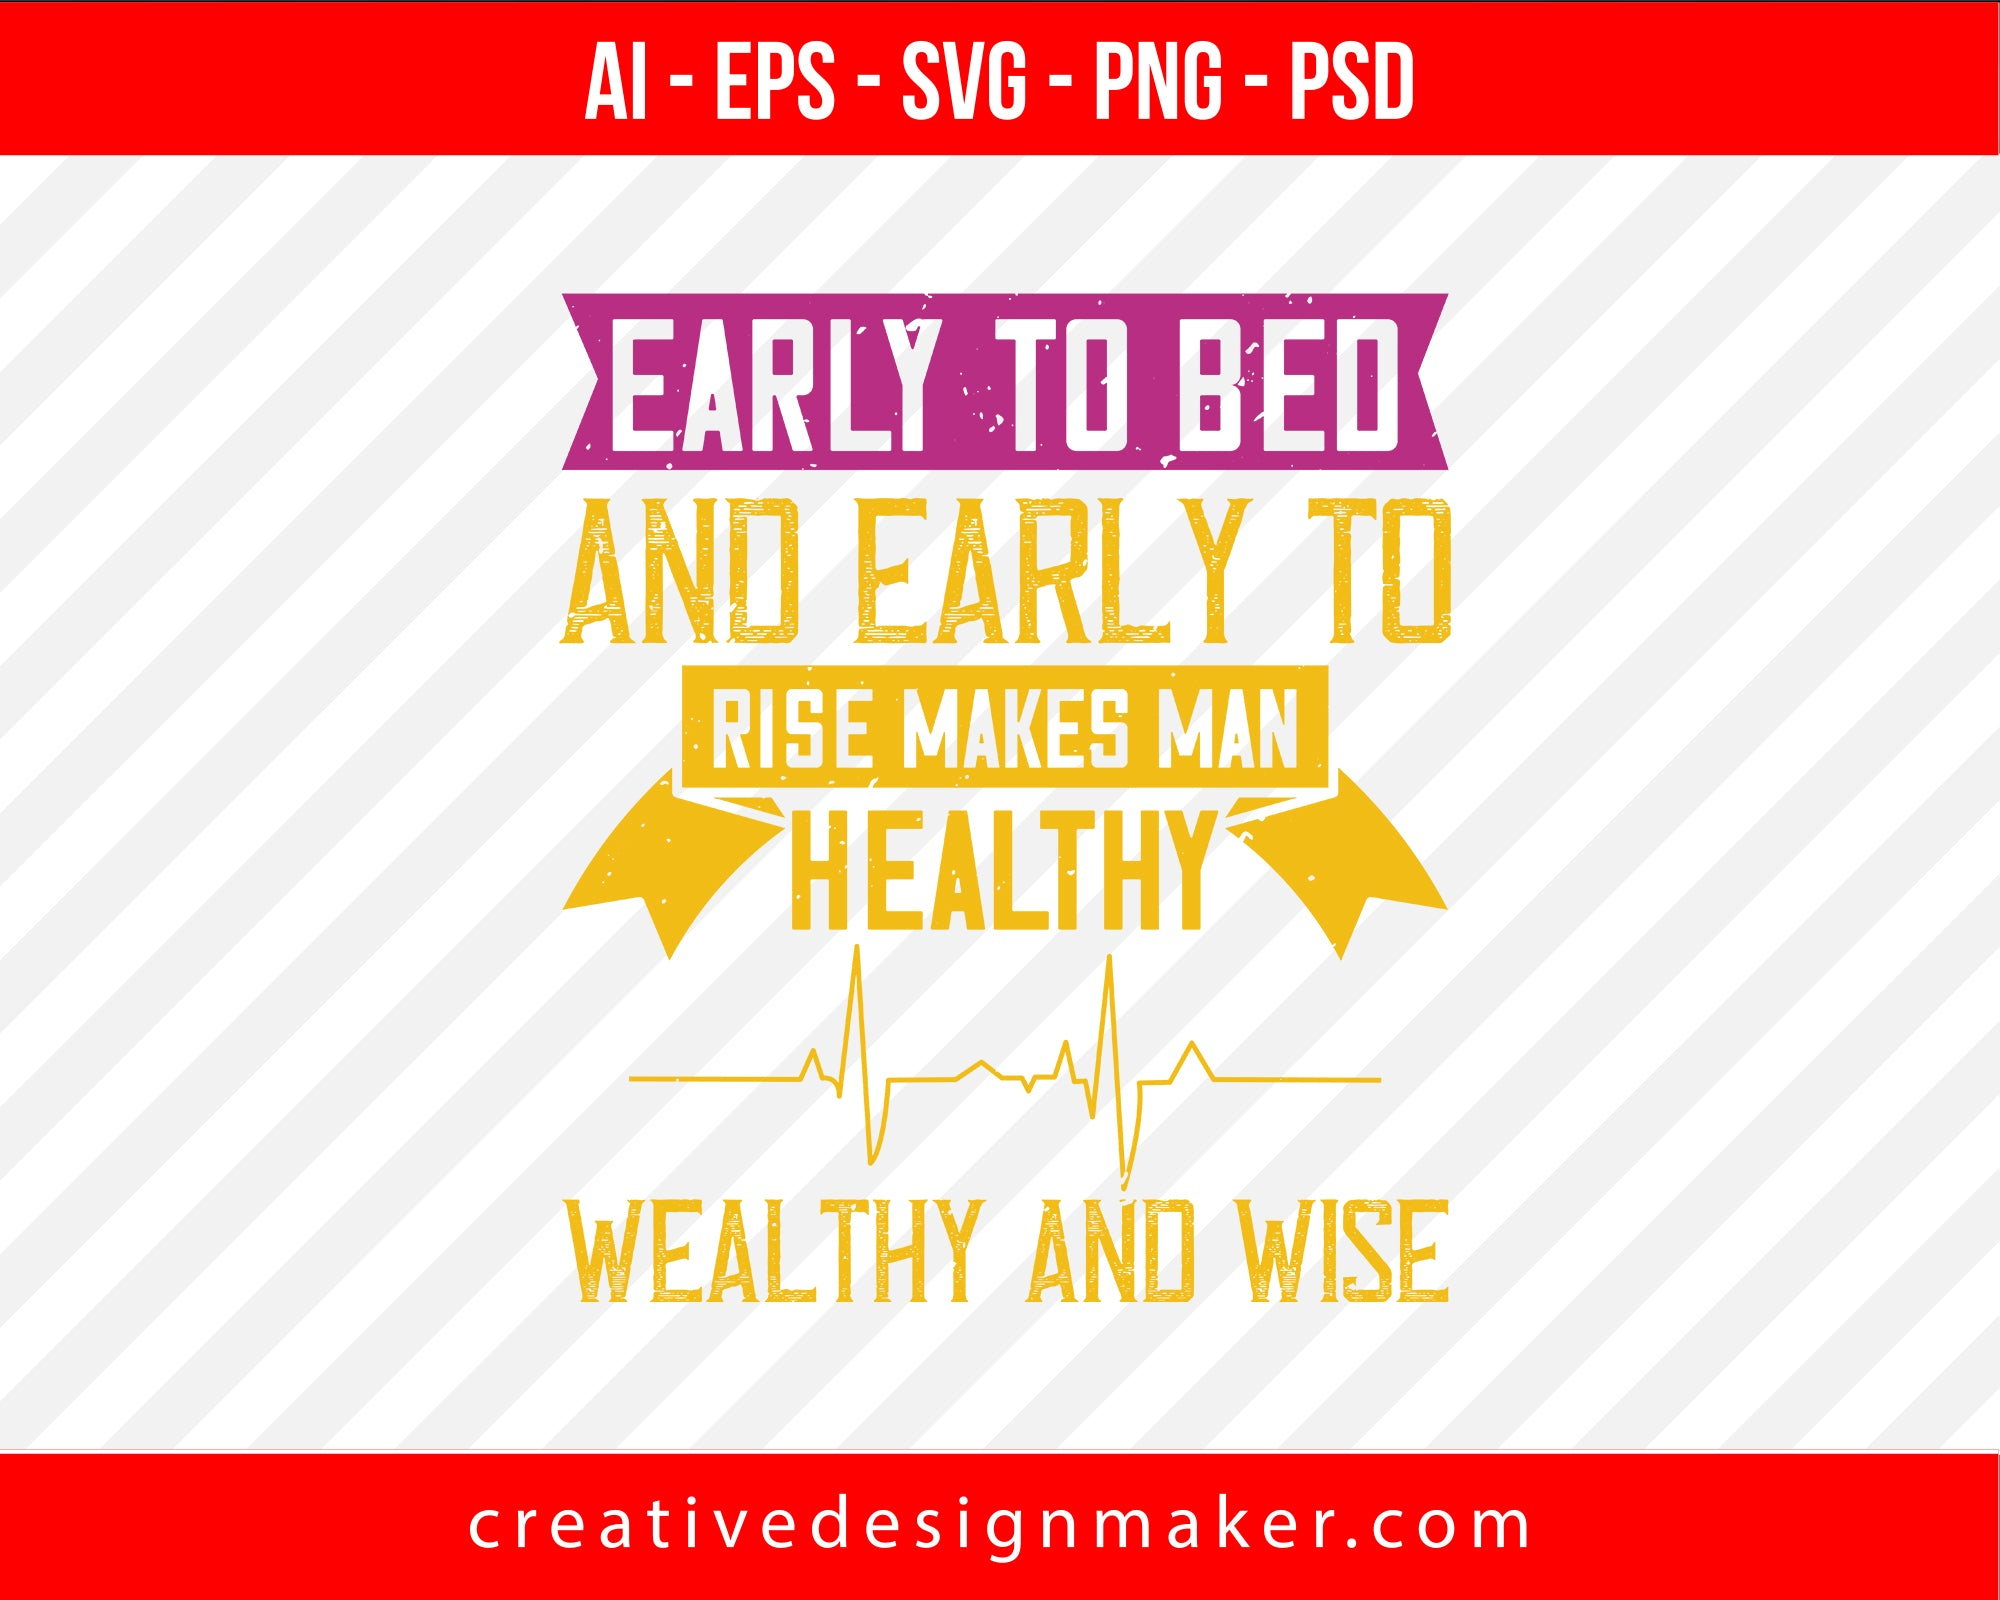 Early to bed and early to rise makes man healthy, wealthy and wise World Health Print Ready Editable T-Shirt SVG Design!